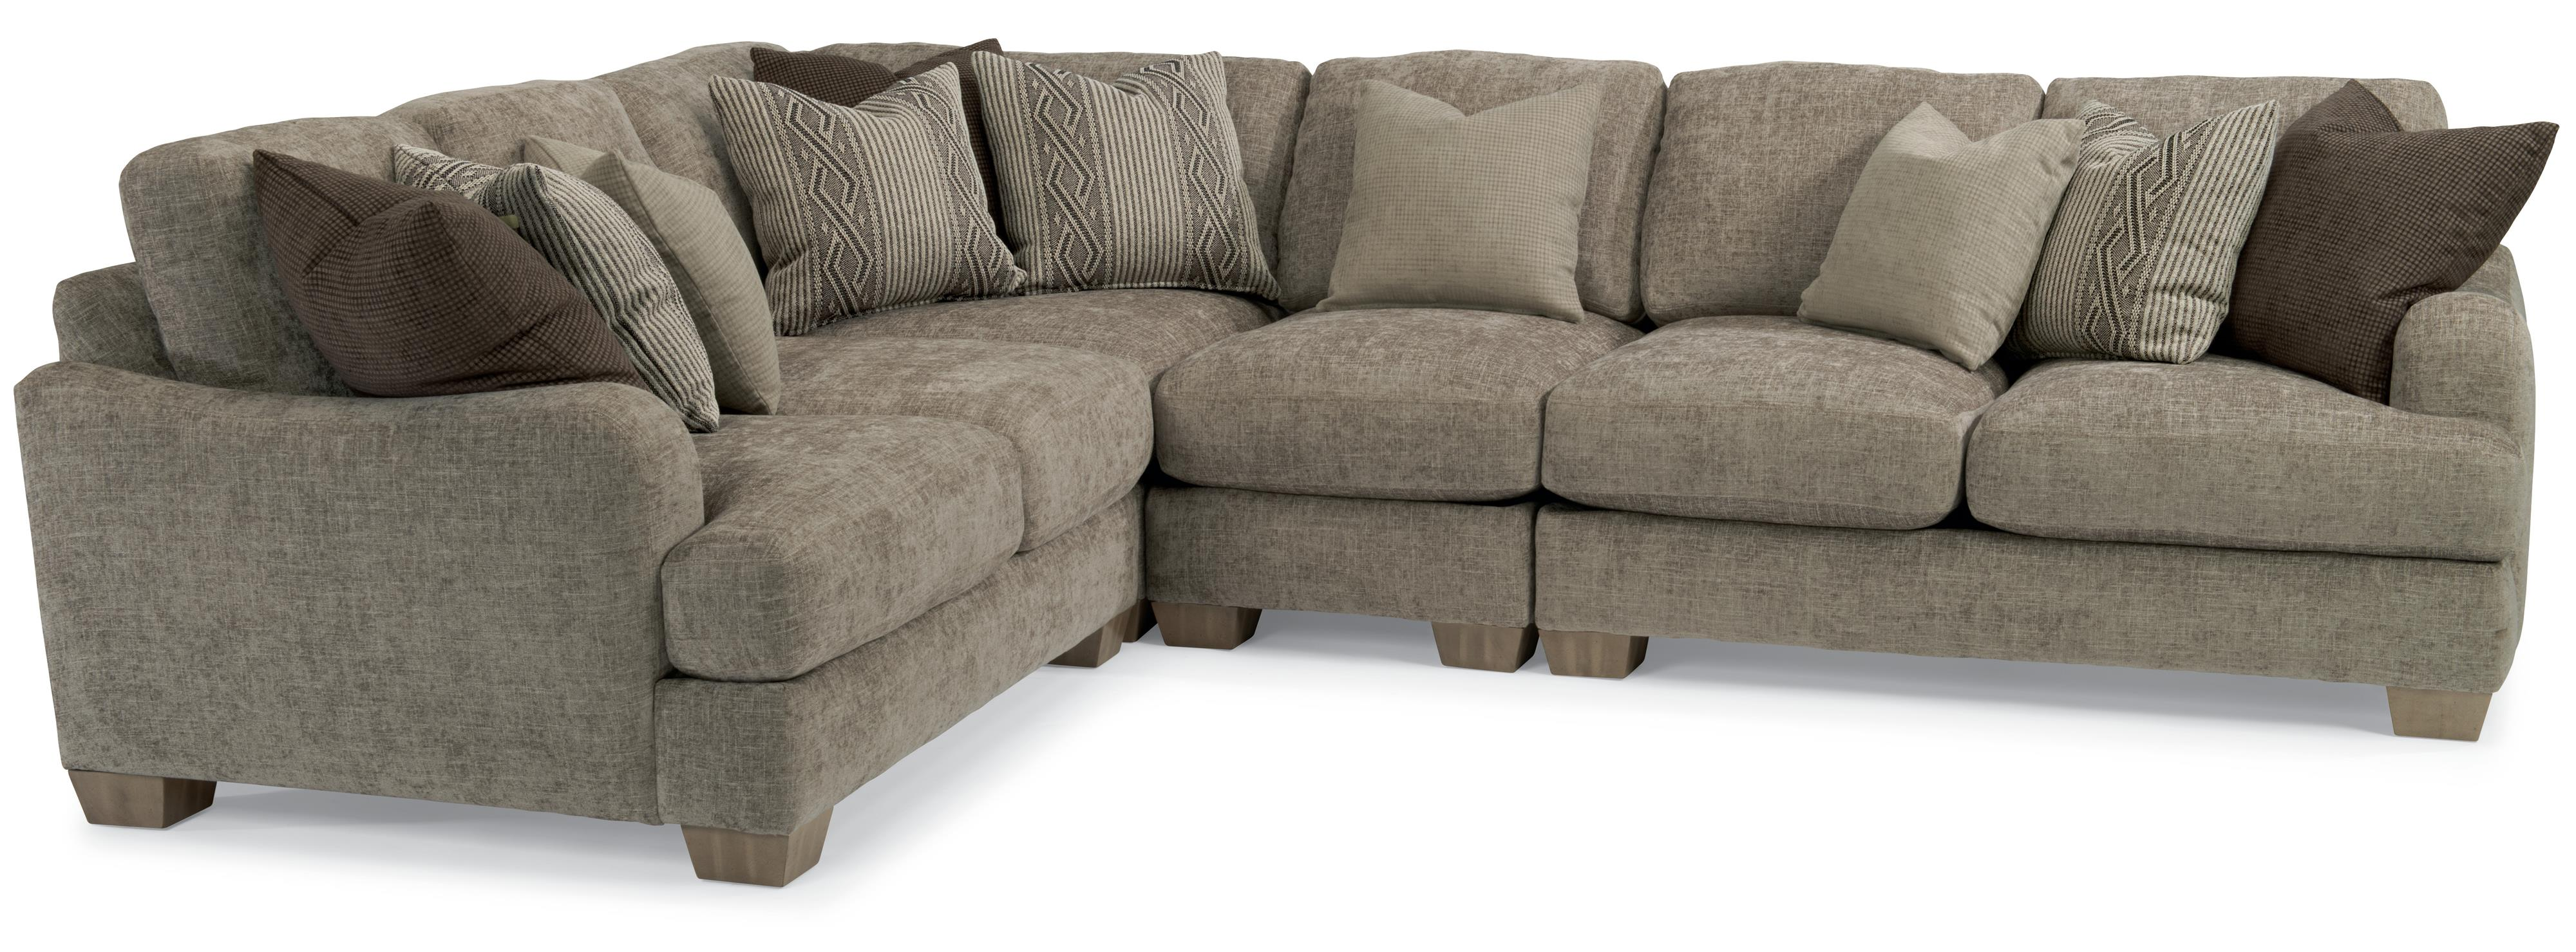 Flexsteel Vanessa Sectional Sofa with Loose Pillow Back Wayside